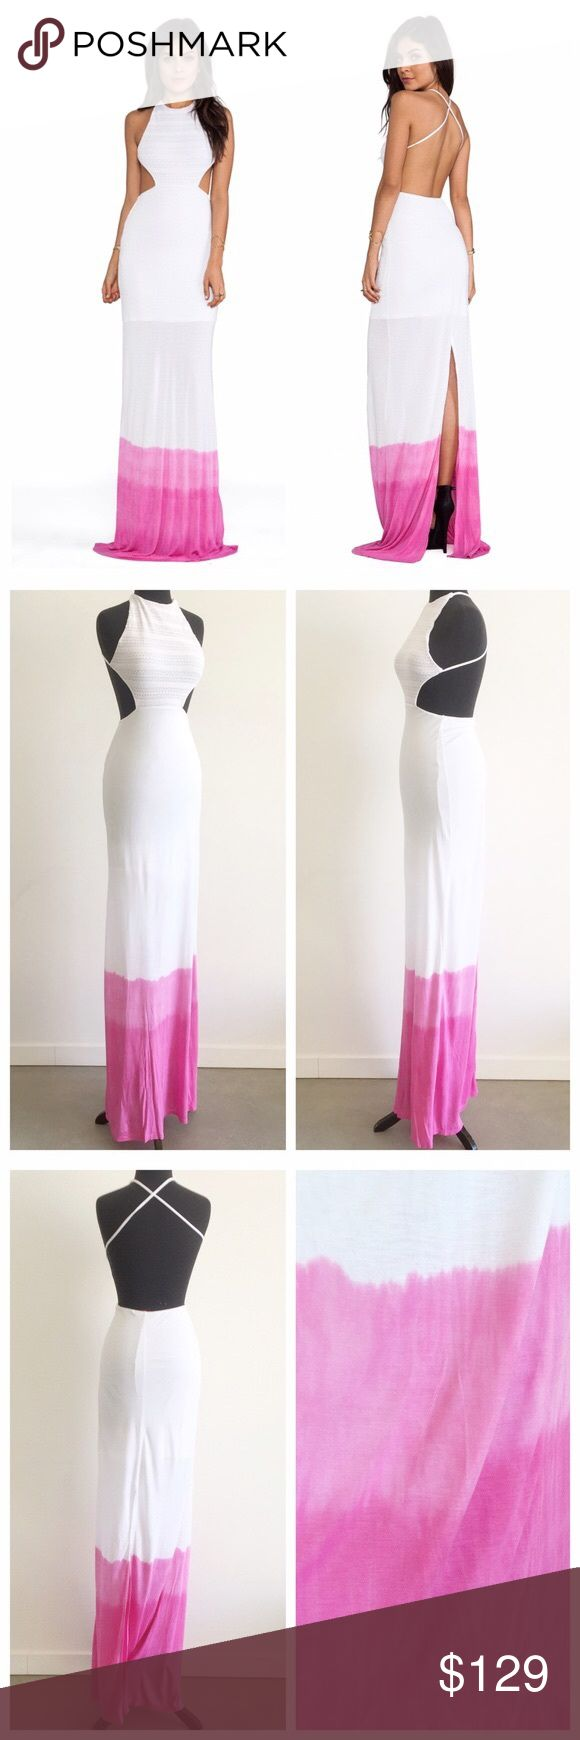 """woodleigh • sydney pink ombre backless maxi dress Sexy backless cutout maxi dress features knit top, dip dye ombre effect skirt, and open back with criss cross straps. Elastic at waist. Partially lined with half skirt. back slit. Top has a sweater knit appearance in very very pale pink and is lined.   • size S -- best for those with smaller busts due to coverage  • neckline to hem approx 68"""" in length  • top: 51% cotton, 58% poly, 1% spandex 